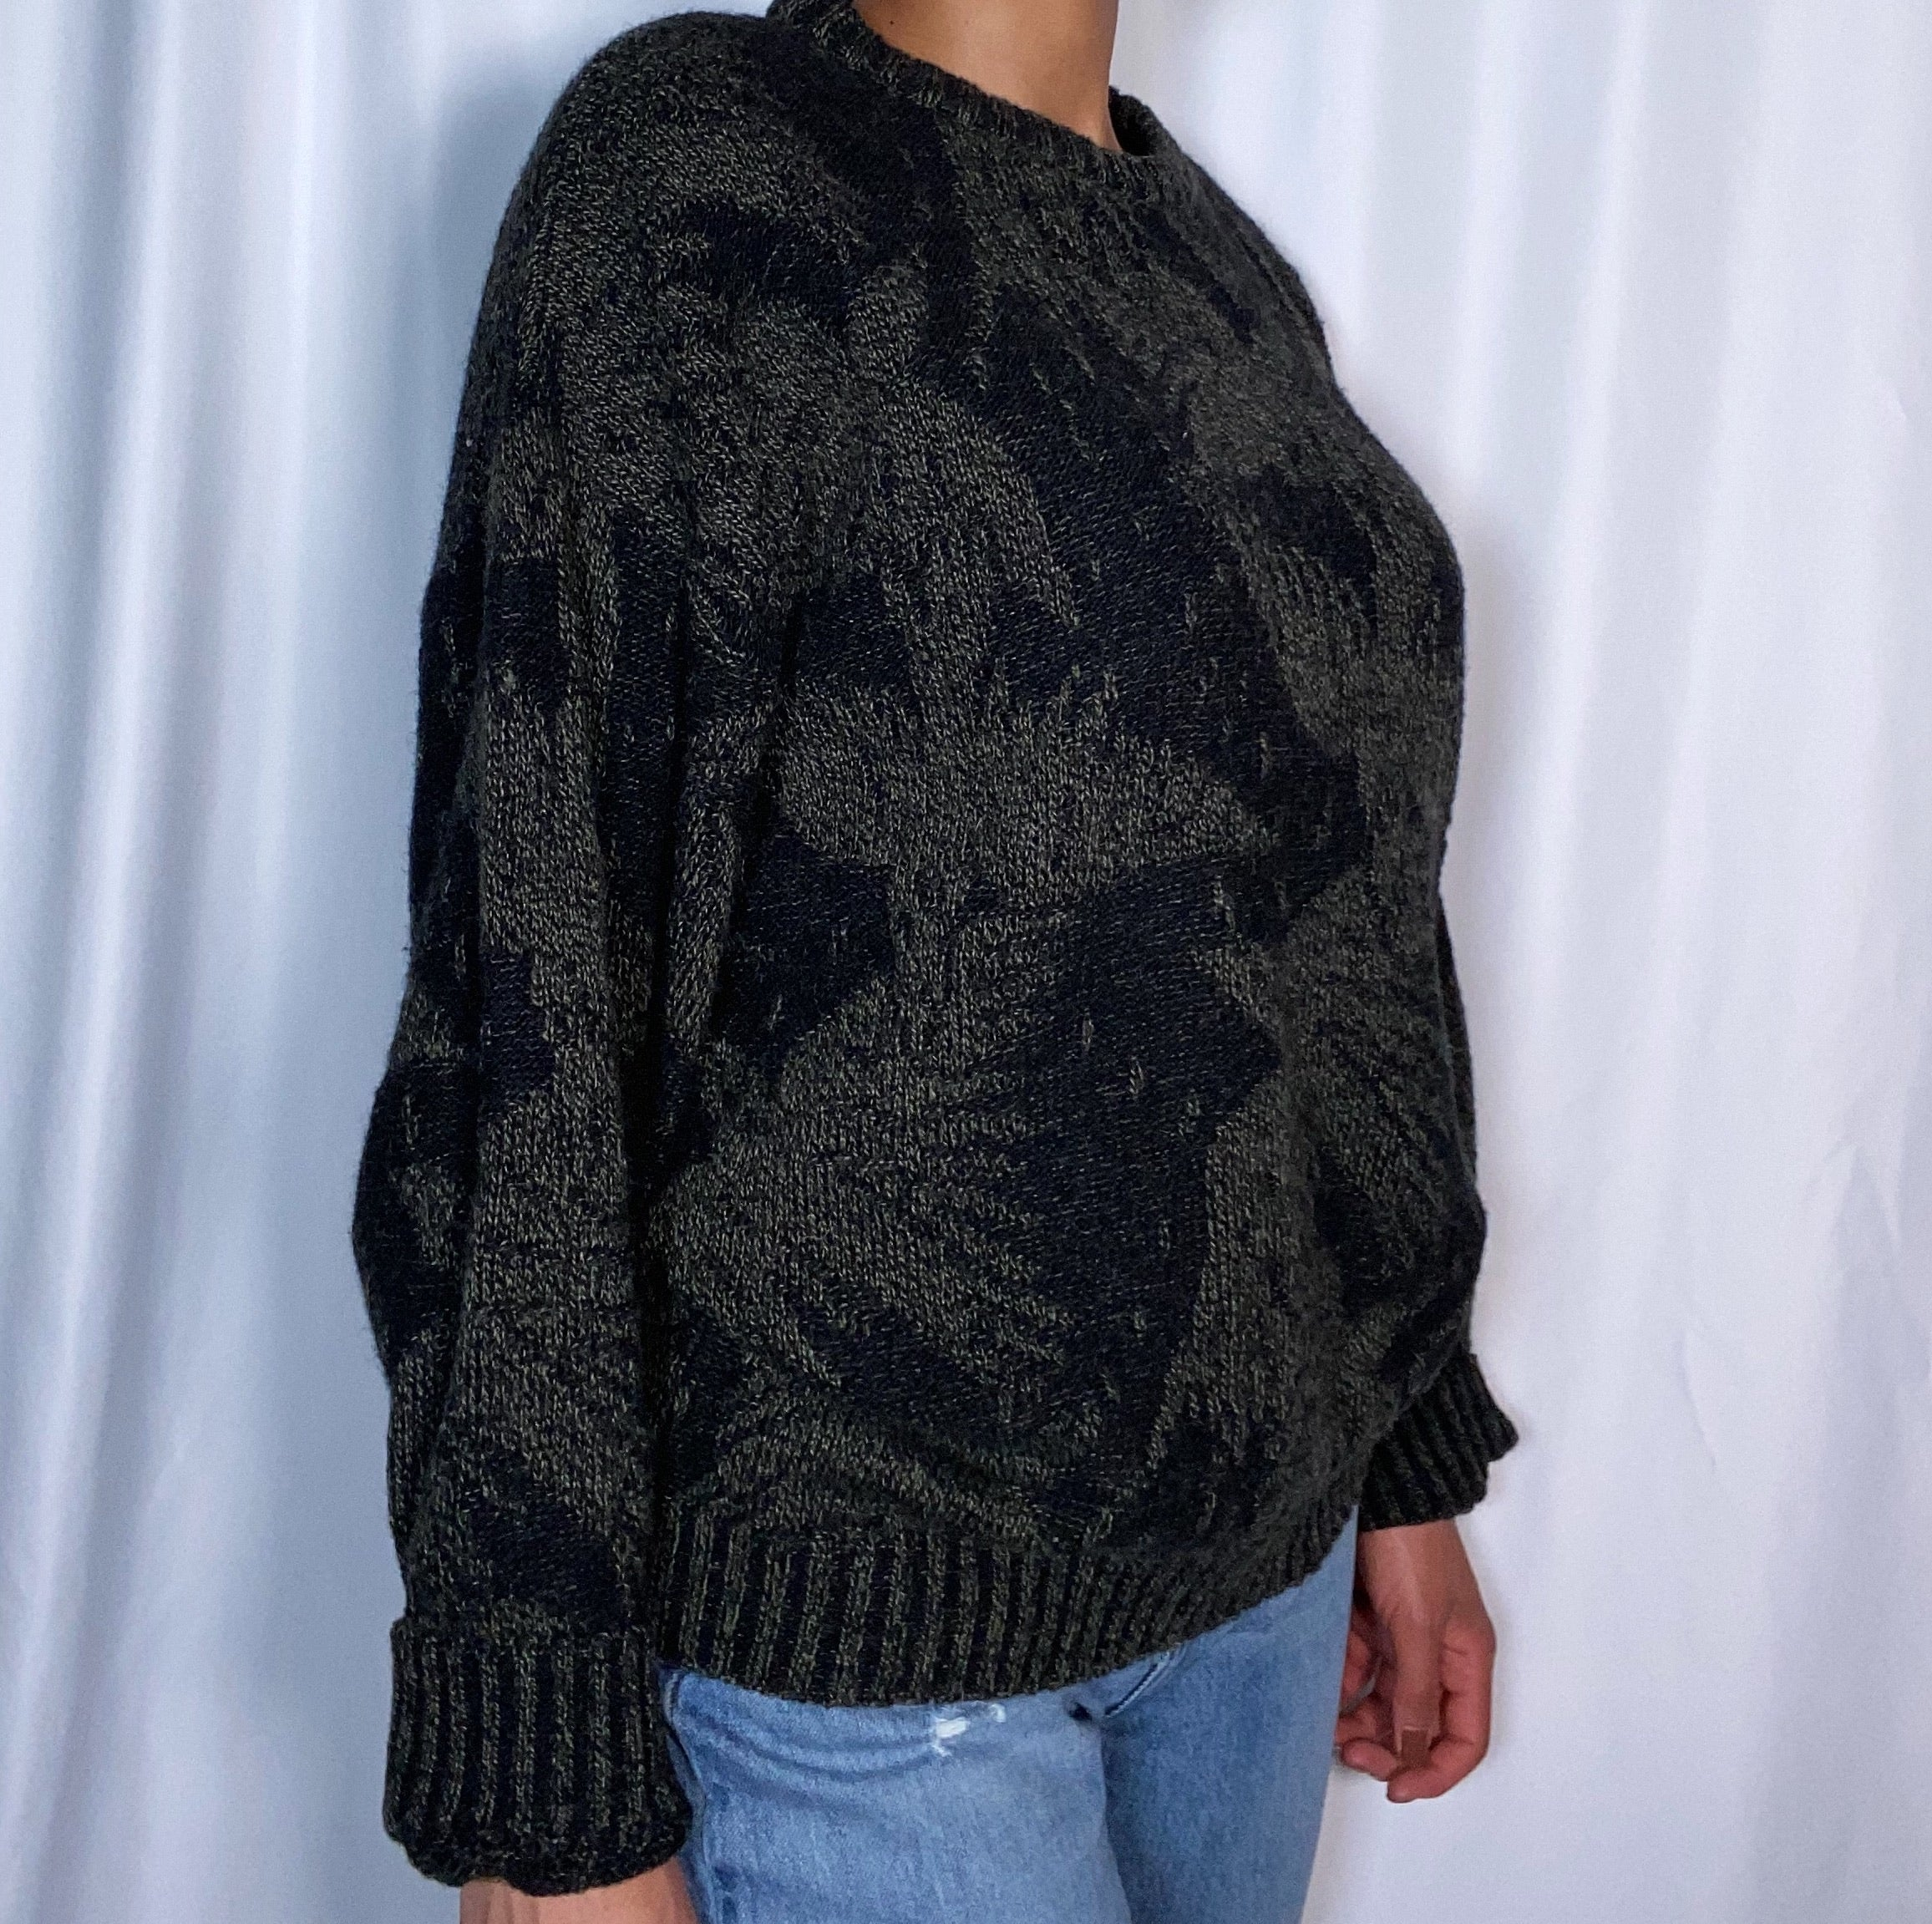 Vintage Expessions Men's Sweater (size large)